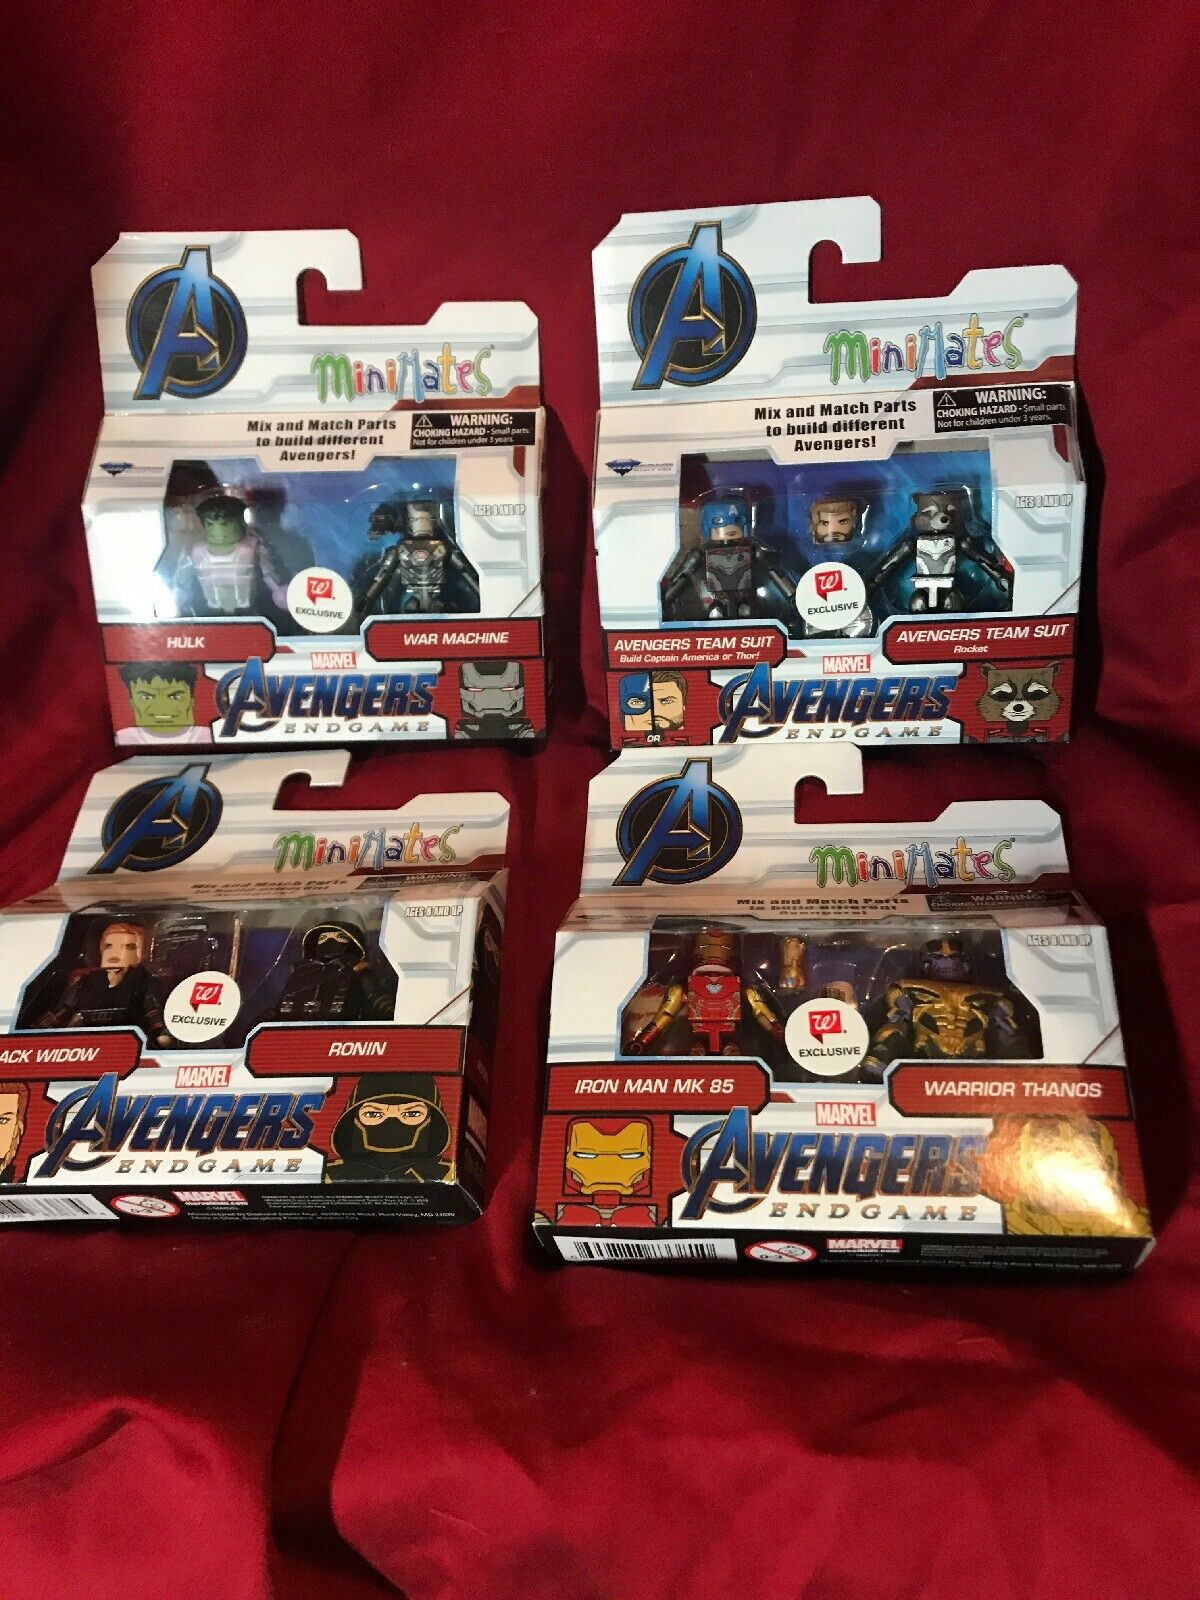 Minimates Marvel Avengers Endgioco Walverdes Exclusive Set of 4.